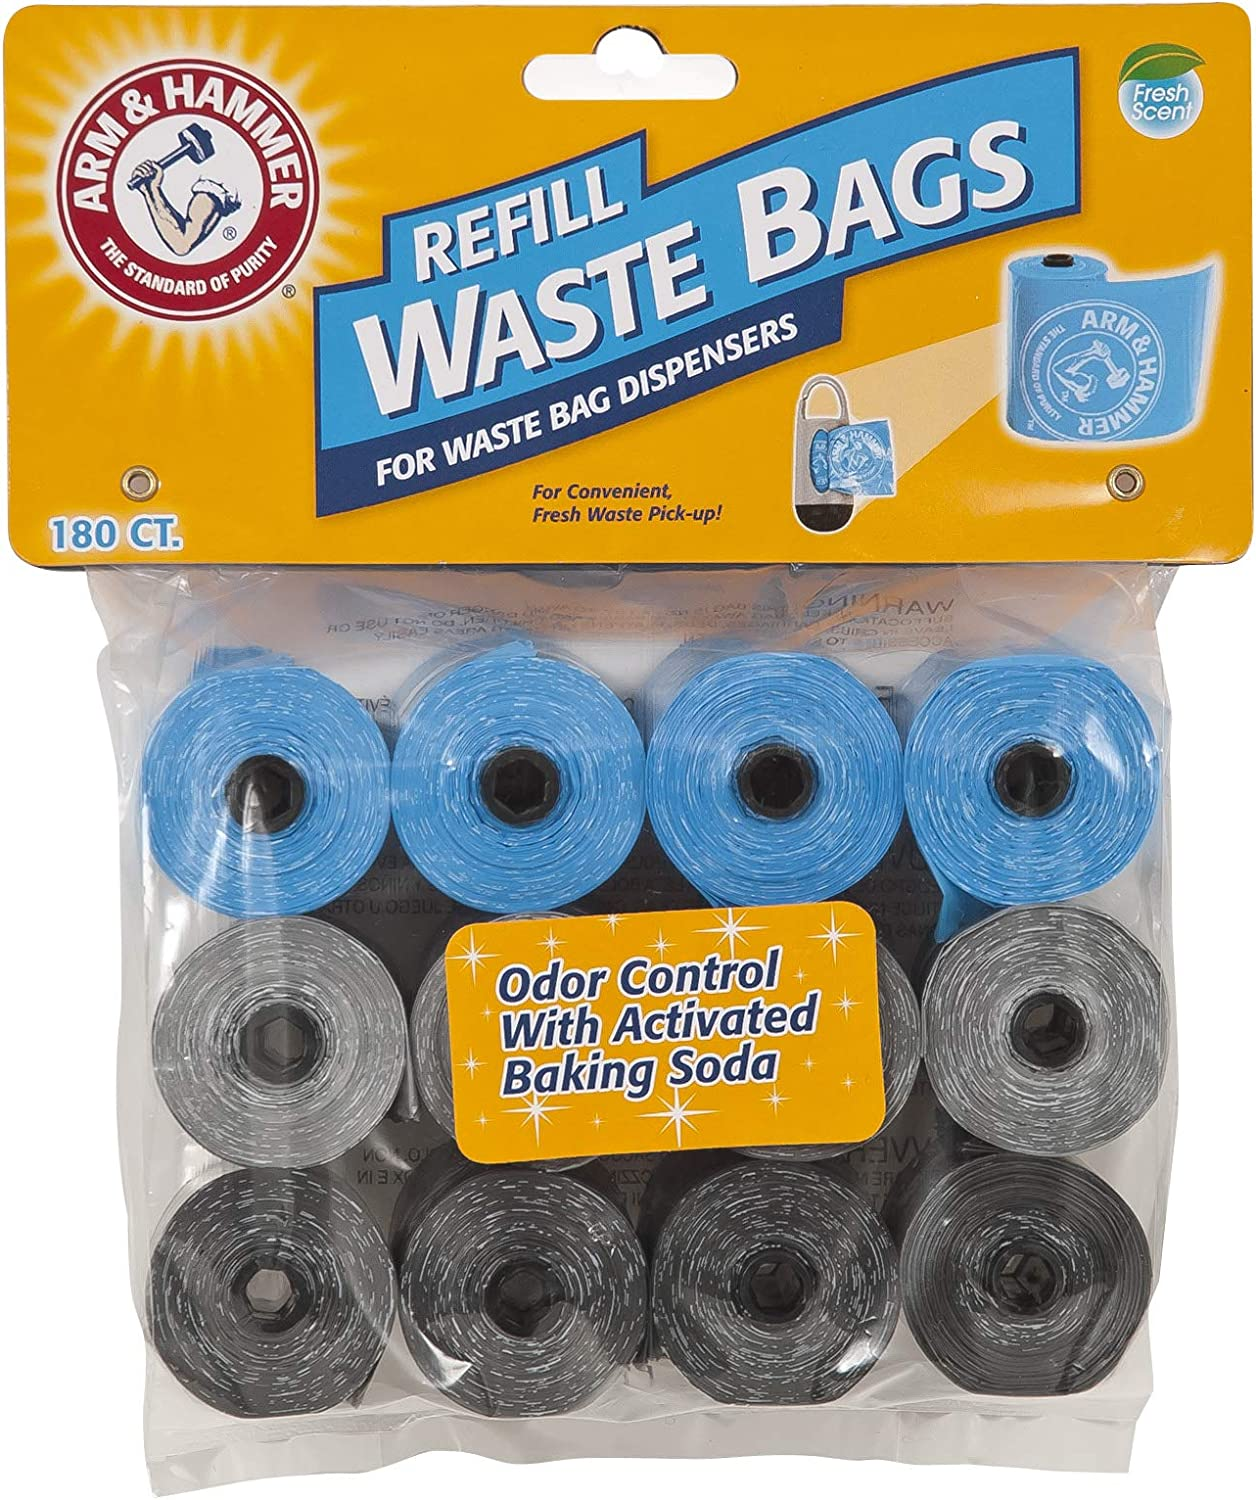 Arm & Hammer Easy-Tear Disposable Waste Bag Refills Assorted Colors Various Multi-packs Available : Pet Waste Bags : Pet Supplies